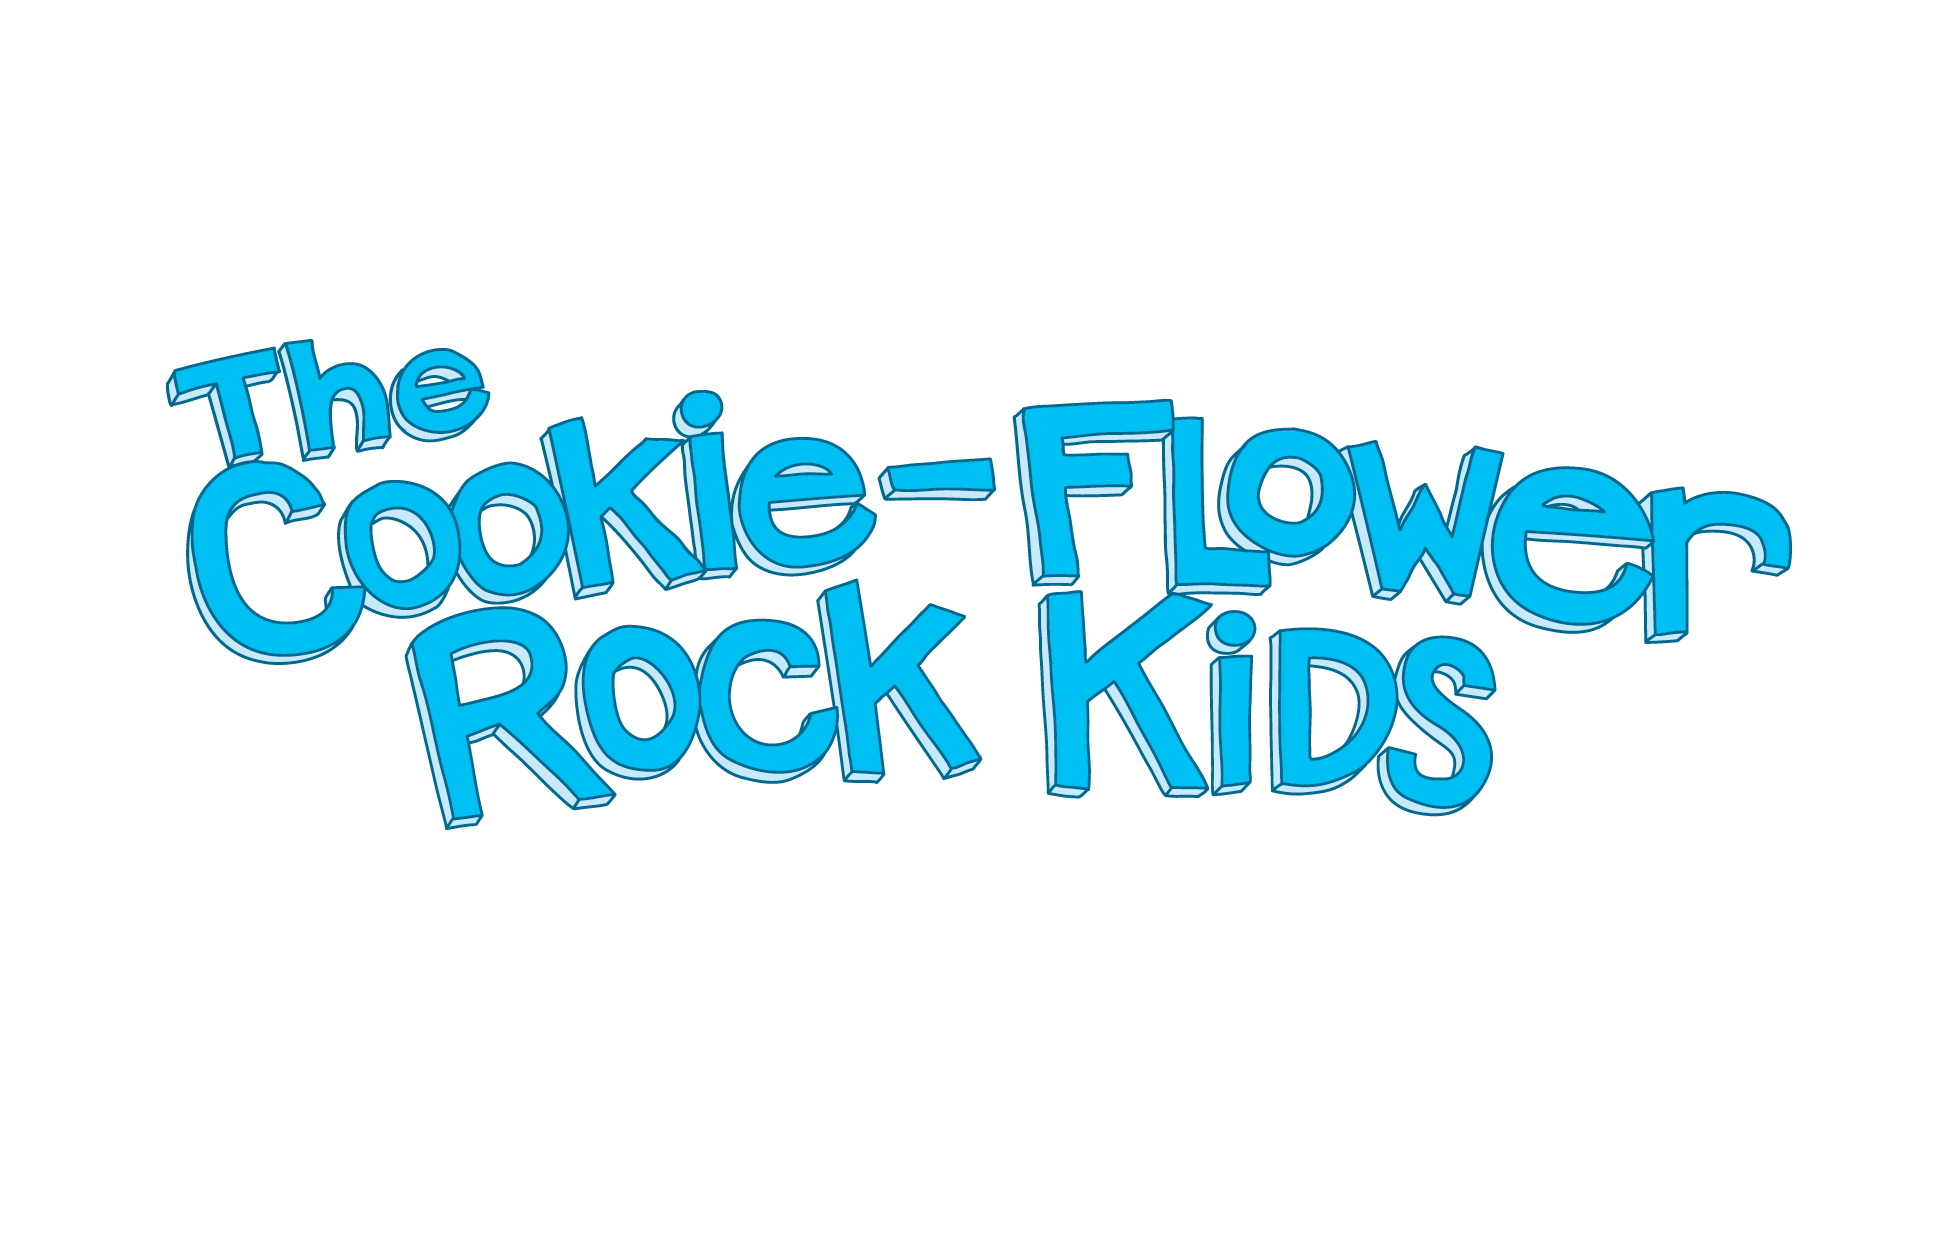 The Cookie-Flower Rock Kids Logo